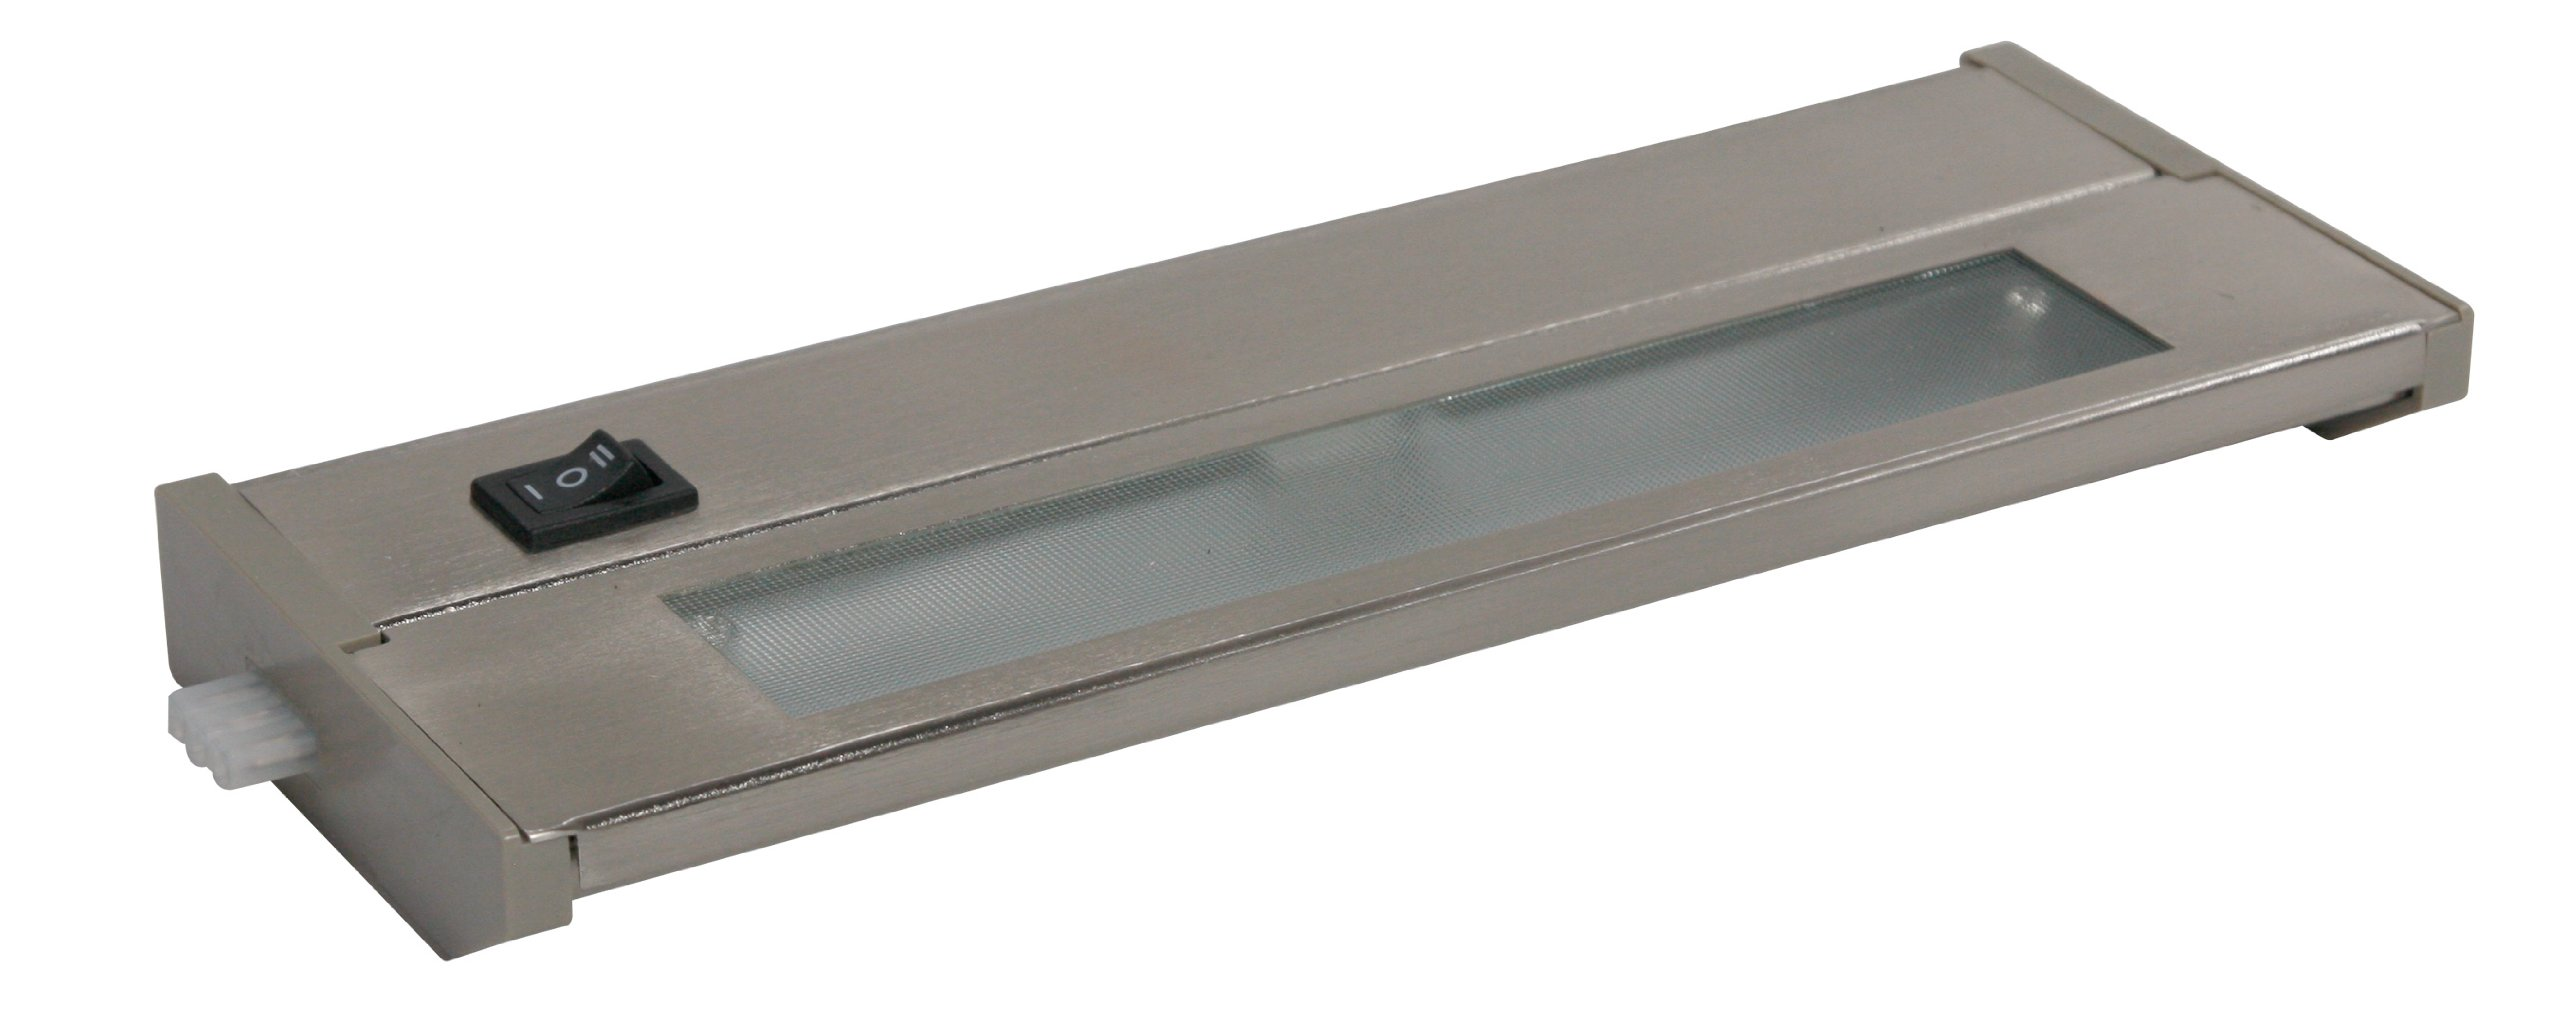 American Lighting 043X-1-BS Priori Xenon Under Cabinet Hardwire Light, 20-Watts, Hi/Low/Off Switch, 120-Volt, 10-Inch, Brushed Steel